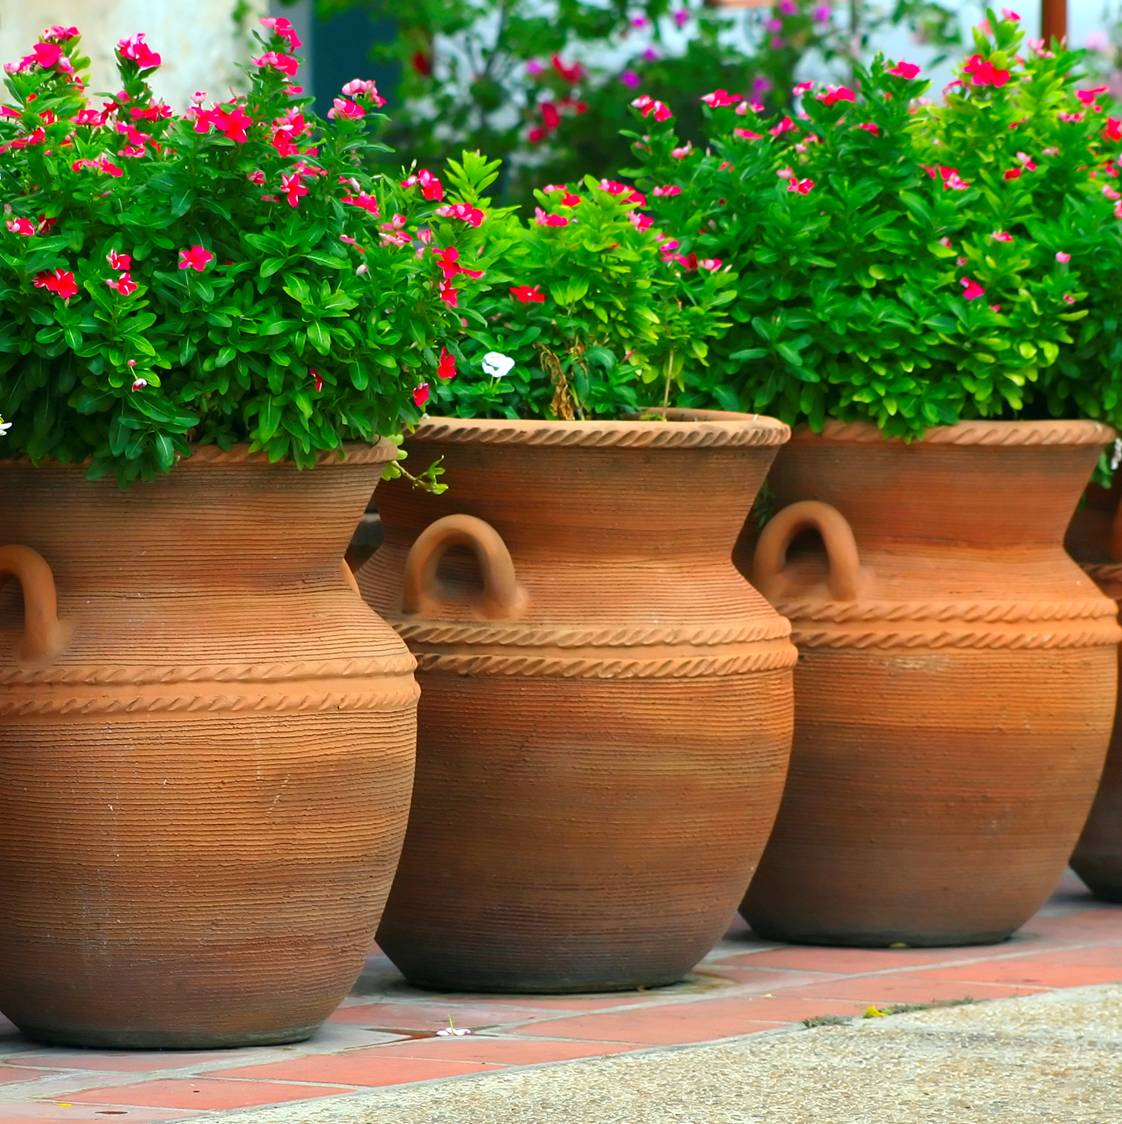 Large Planter Garden and Terrace Pots Ideas